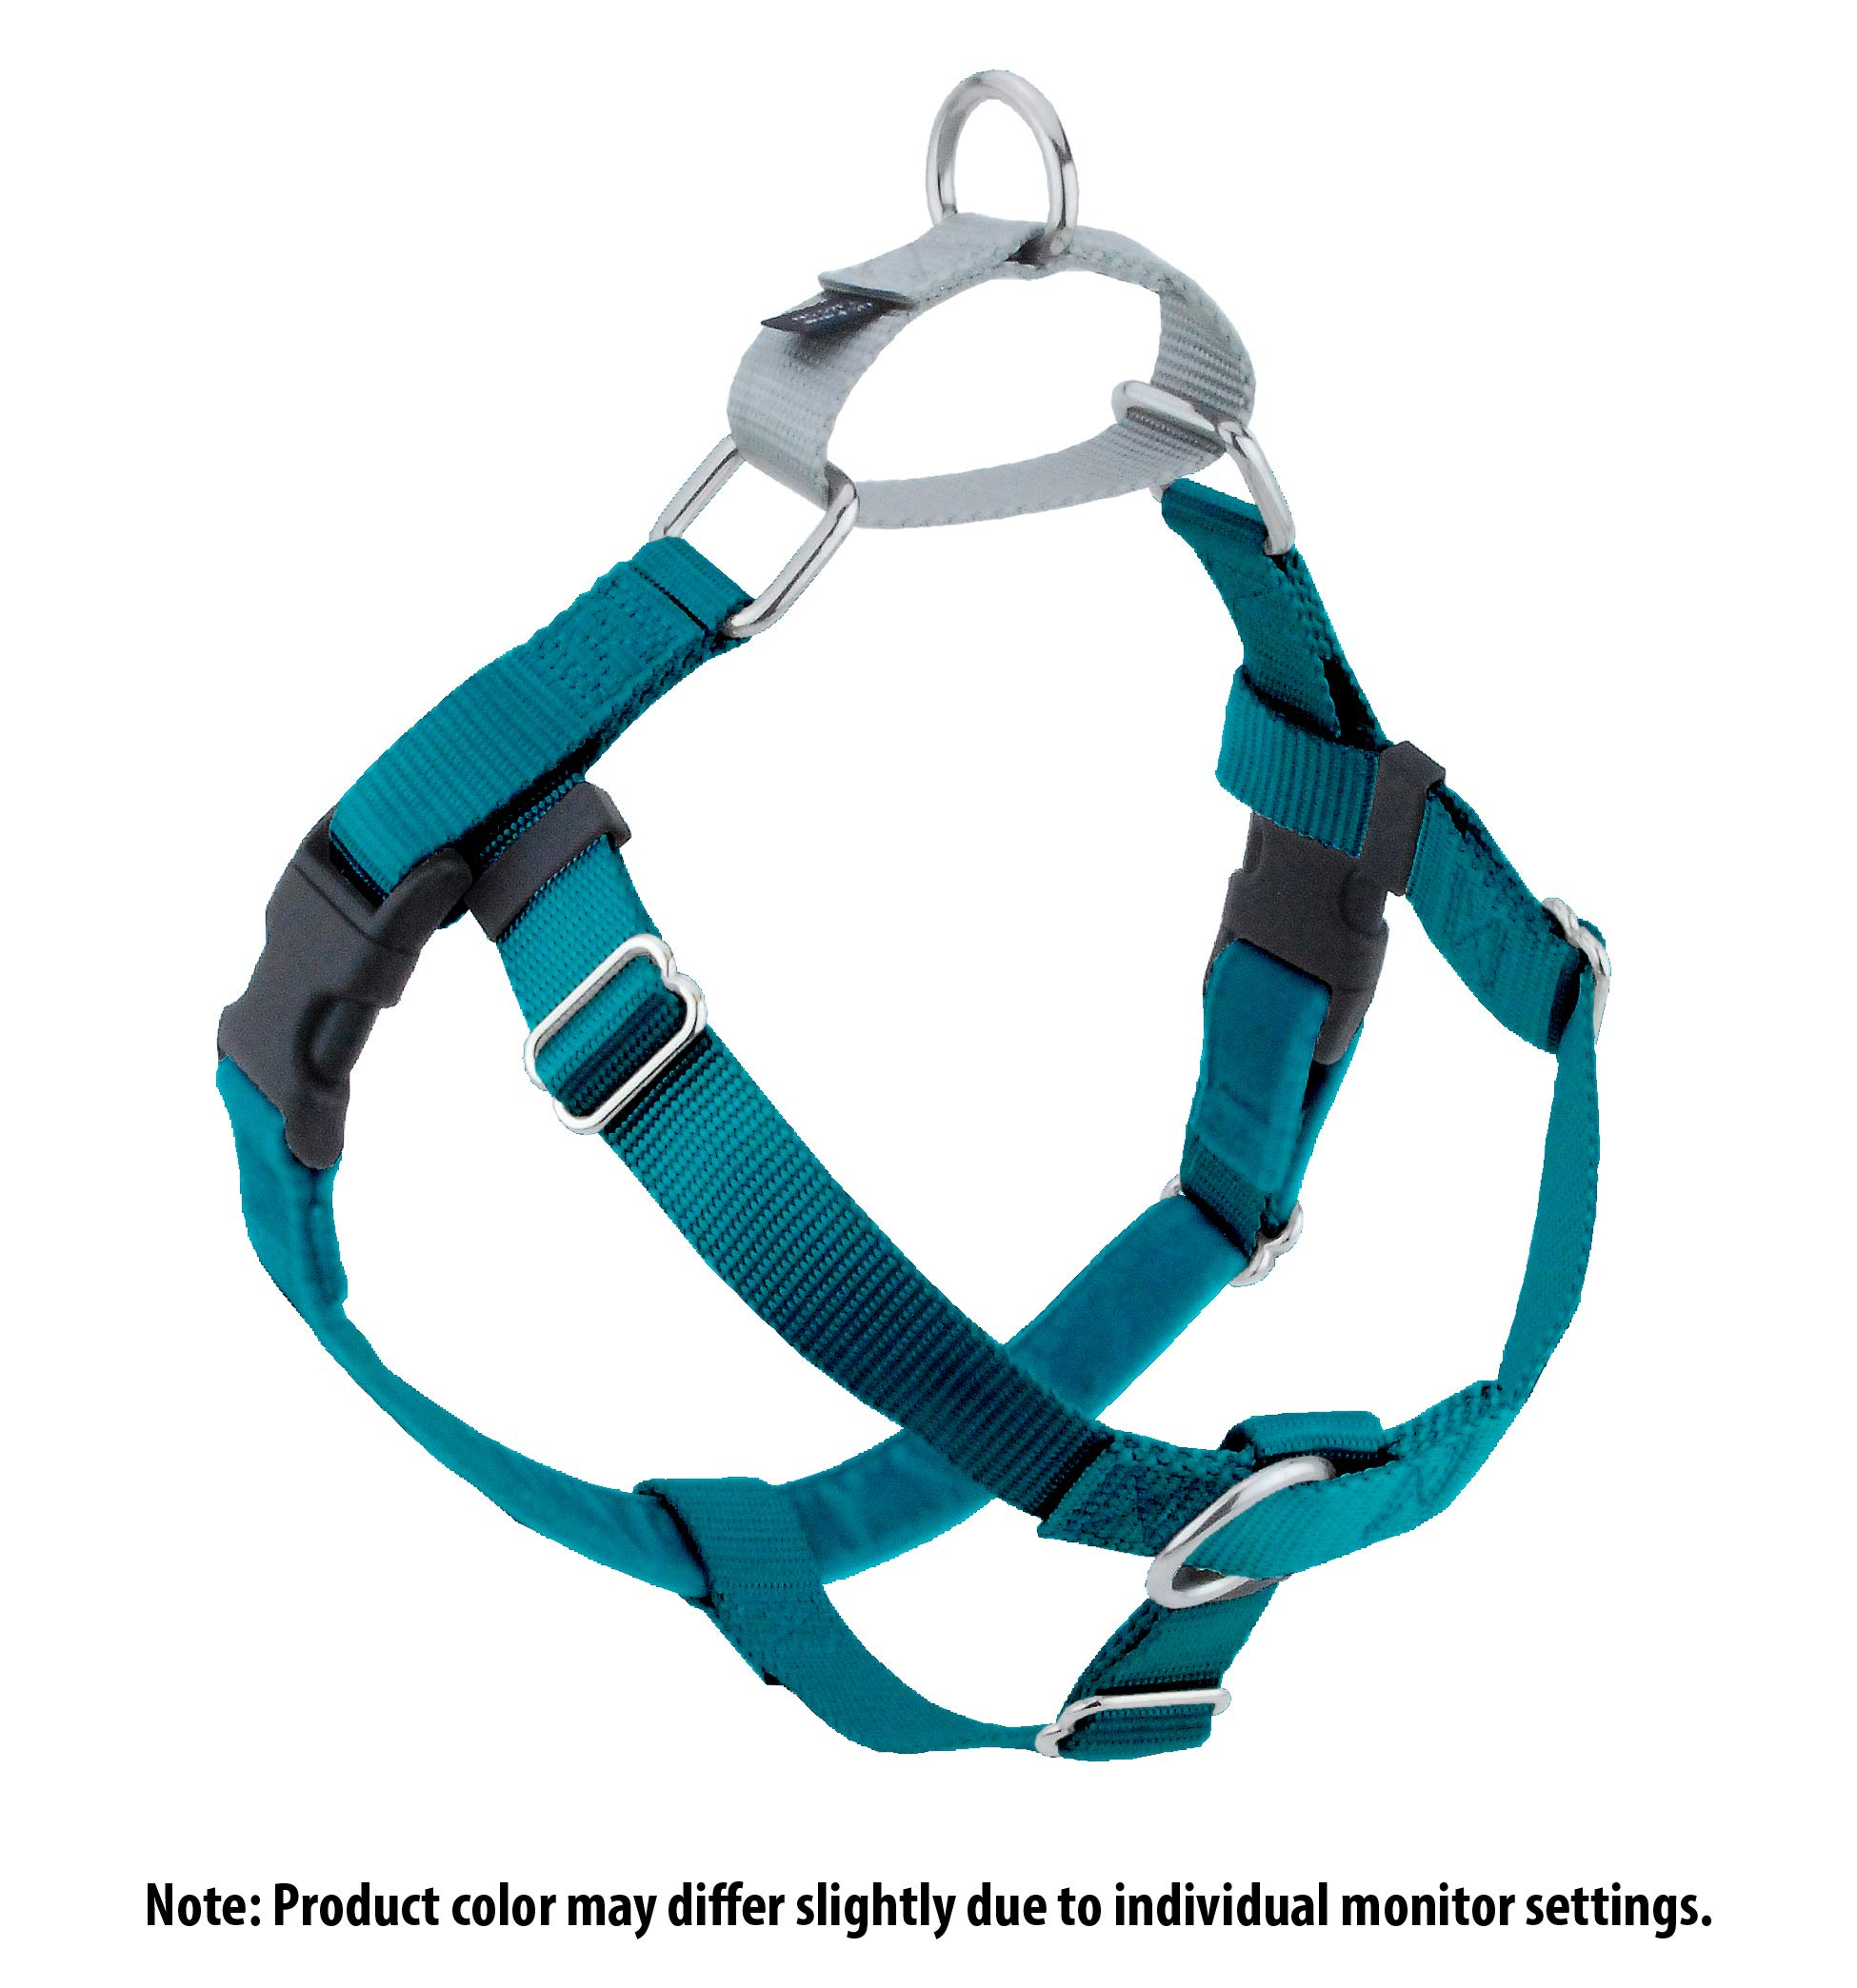 2 Hounds Design Freedom No-Pull Dog Harness, Adjustable Comfortable Control Dog Walking, Made in USA (Leash Sold Separately) (Medium 1'') (Teal)